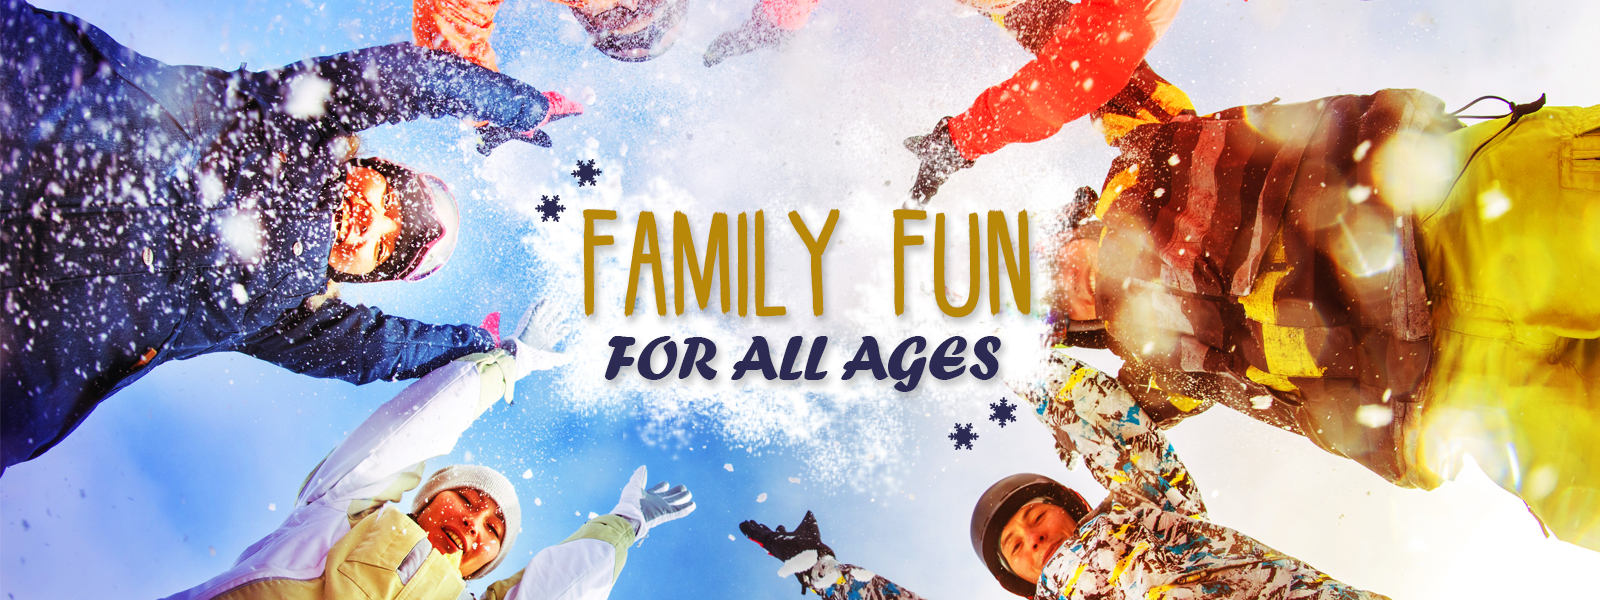 Family fun for all ages